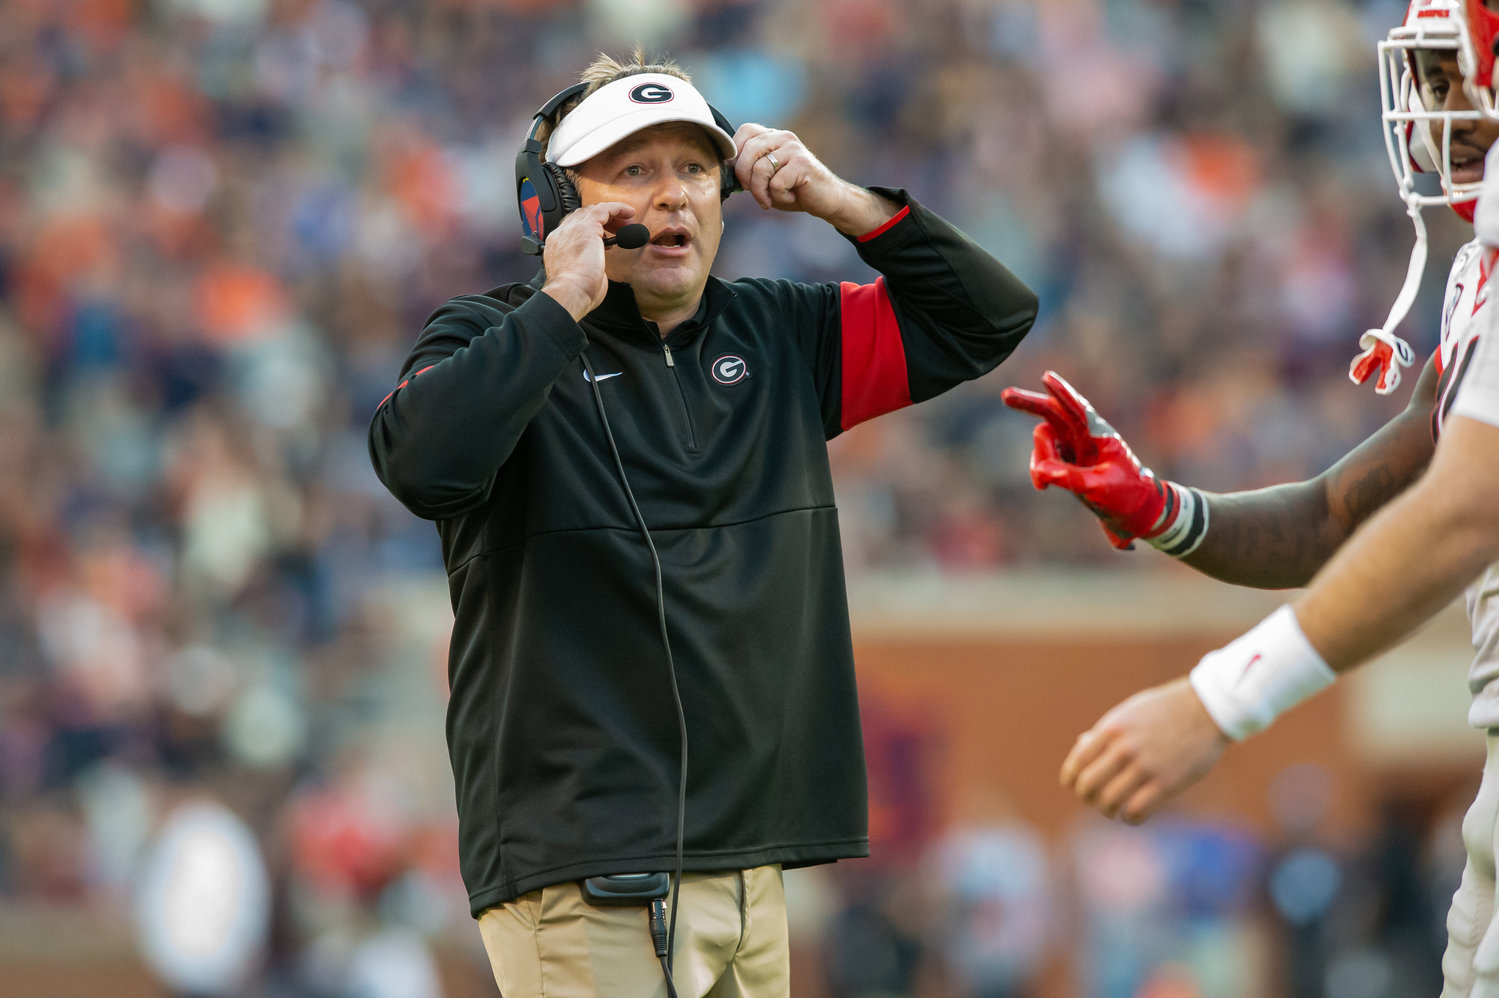 Georgia Bulldogs head coach Kirby Smart during the first half of Saturday's game, at Jordan-Hare Stadium in Auburn,, AL. Daily Mountain Eagle -  Jeff Johnsey